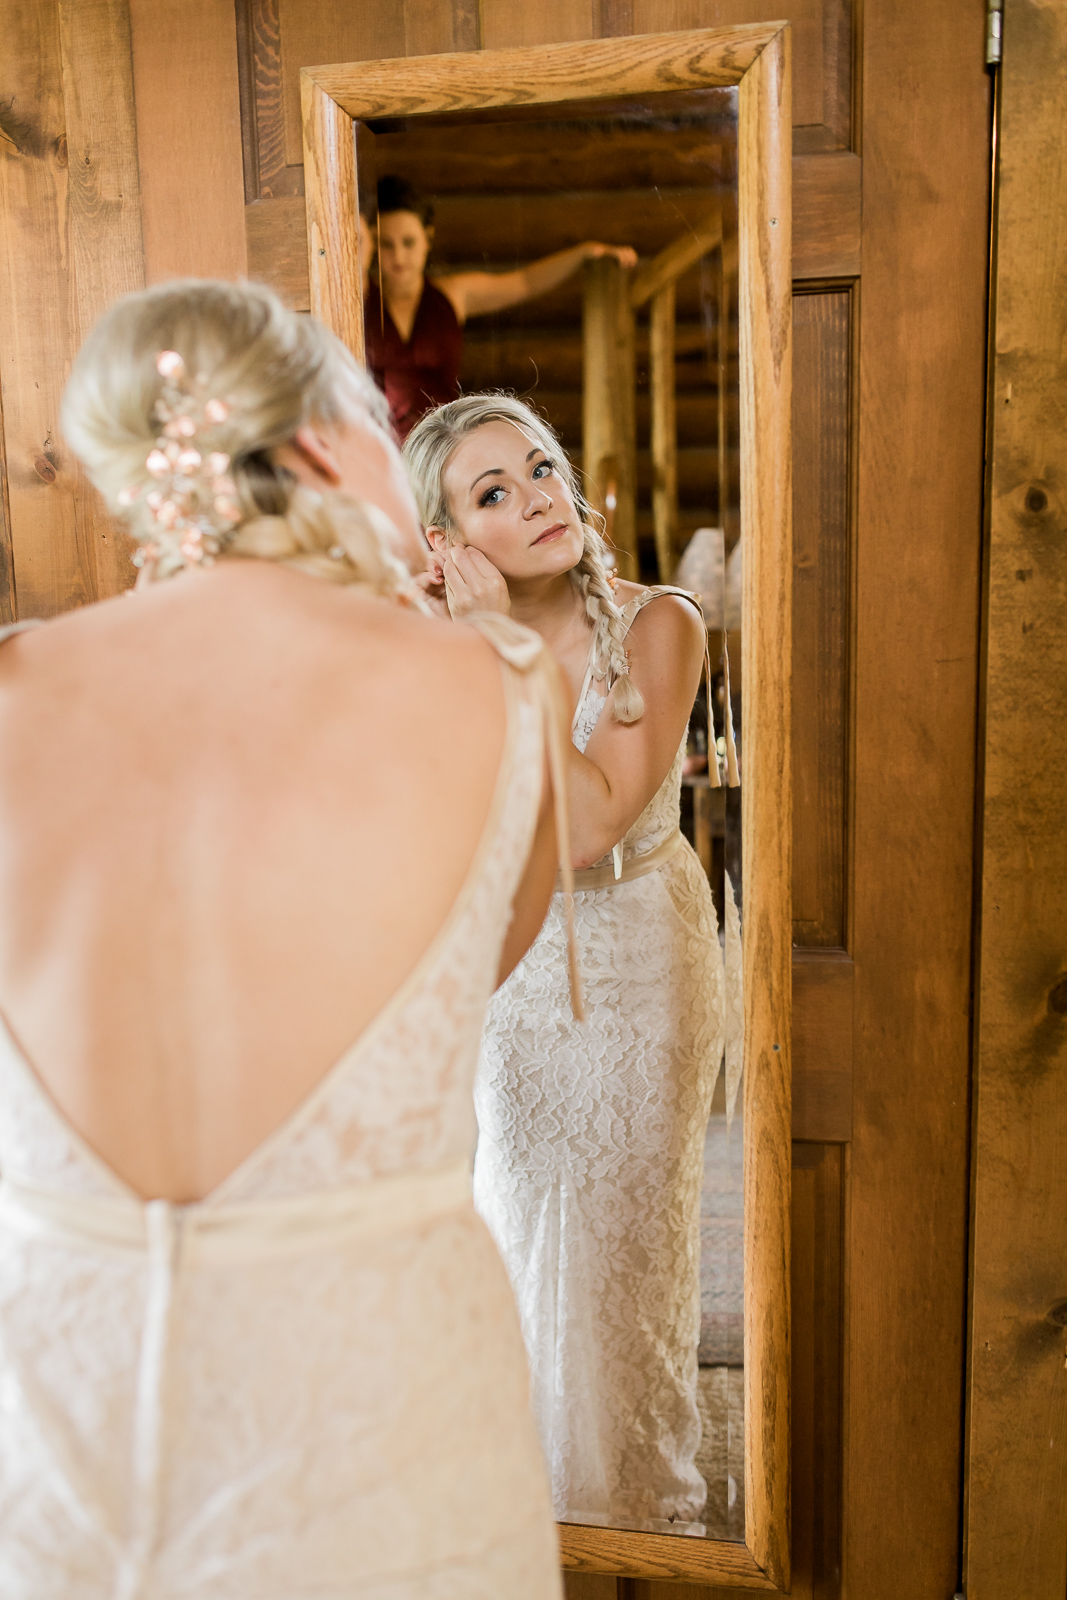 wedding day moments not to miss